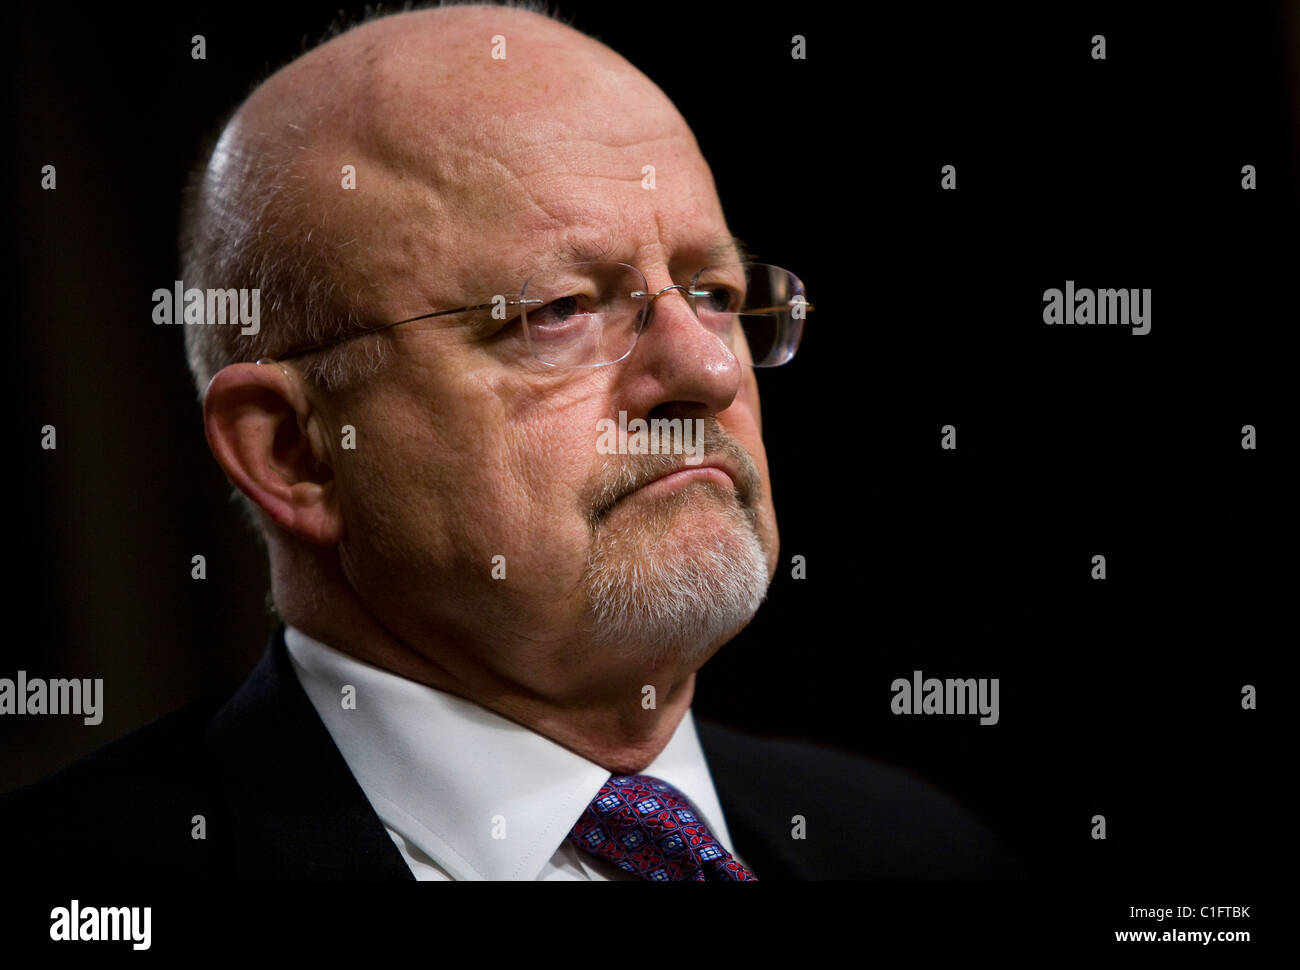 James Clapper, Director of National Intelligence.  - Stock Image